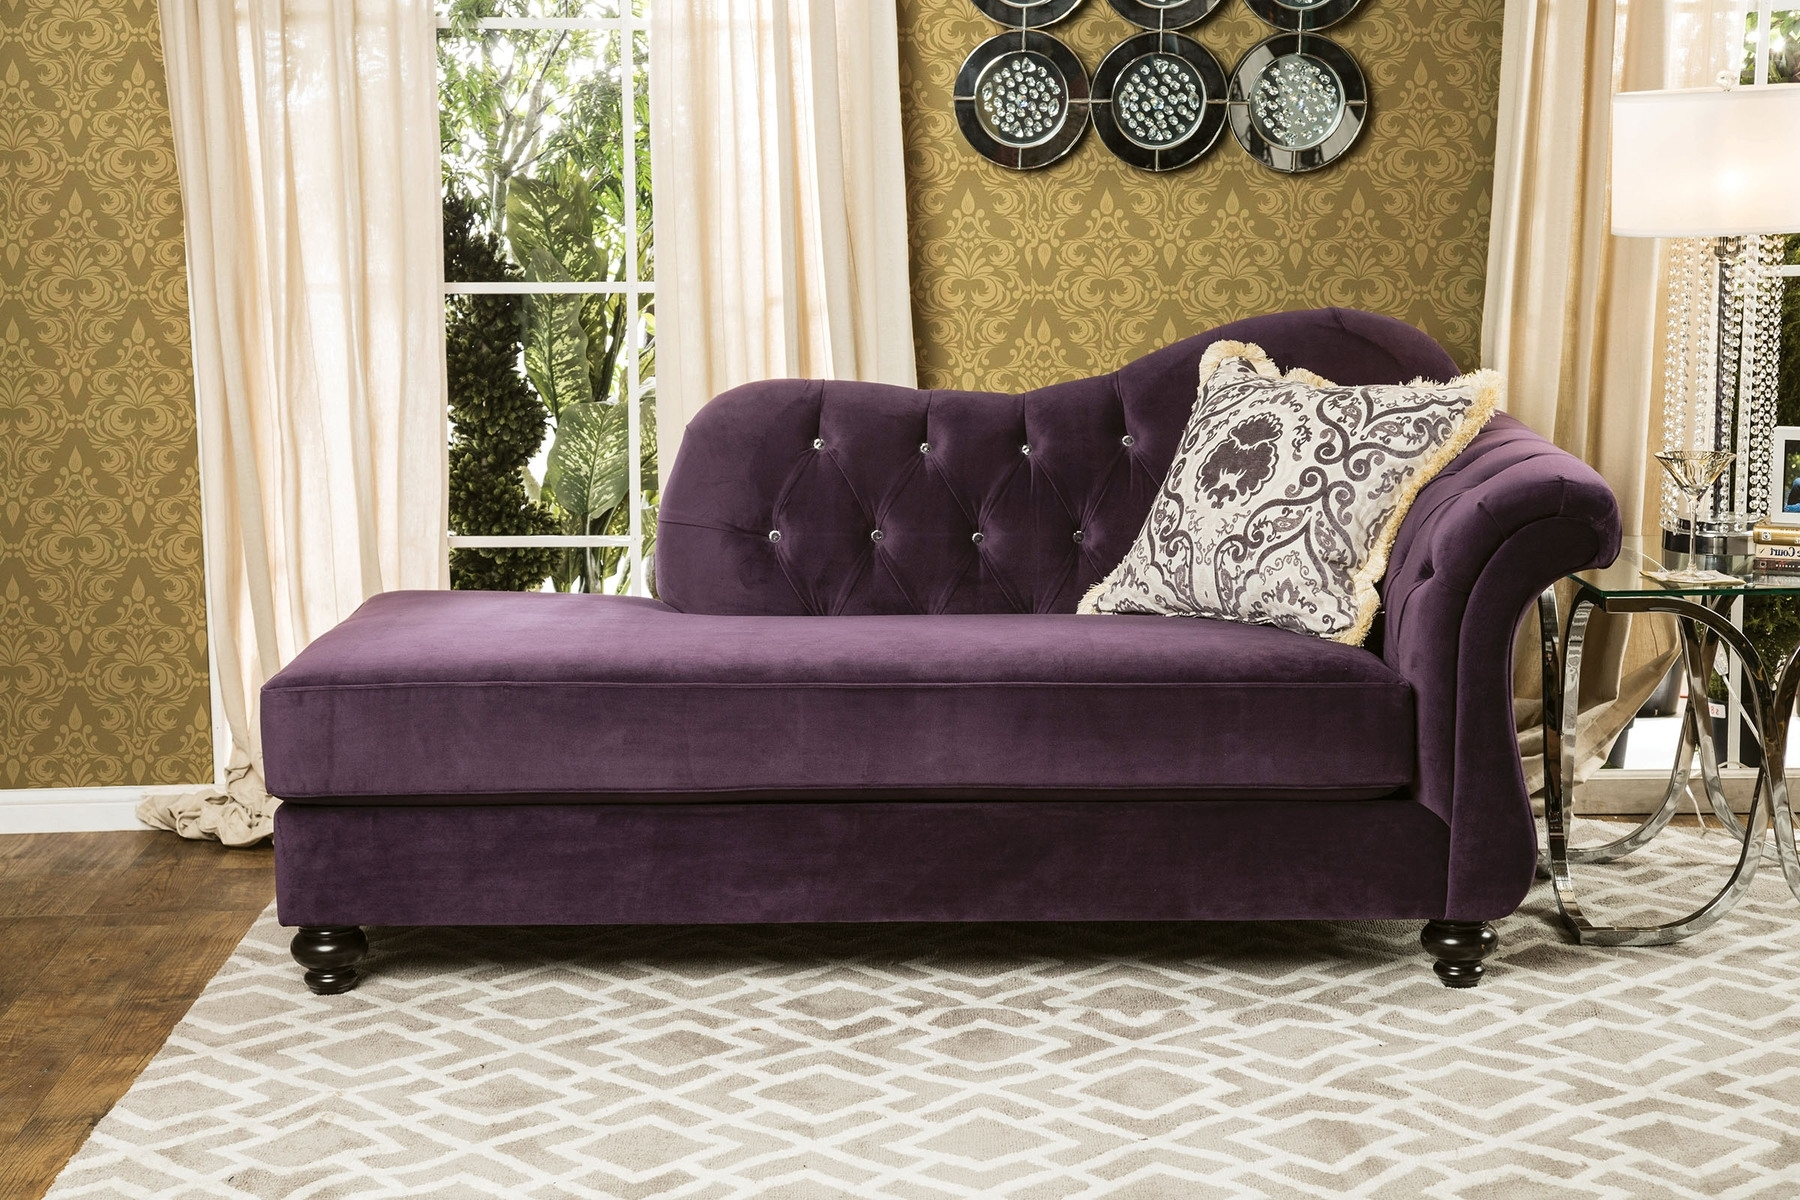 Purple Chaises Inside 2017 Antoinette Purple Chair Sm2222 Ce Furniture Of America Chaises (View 8 of 15)